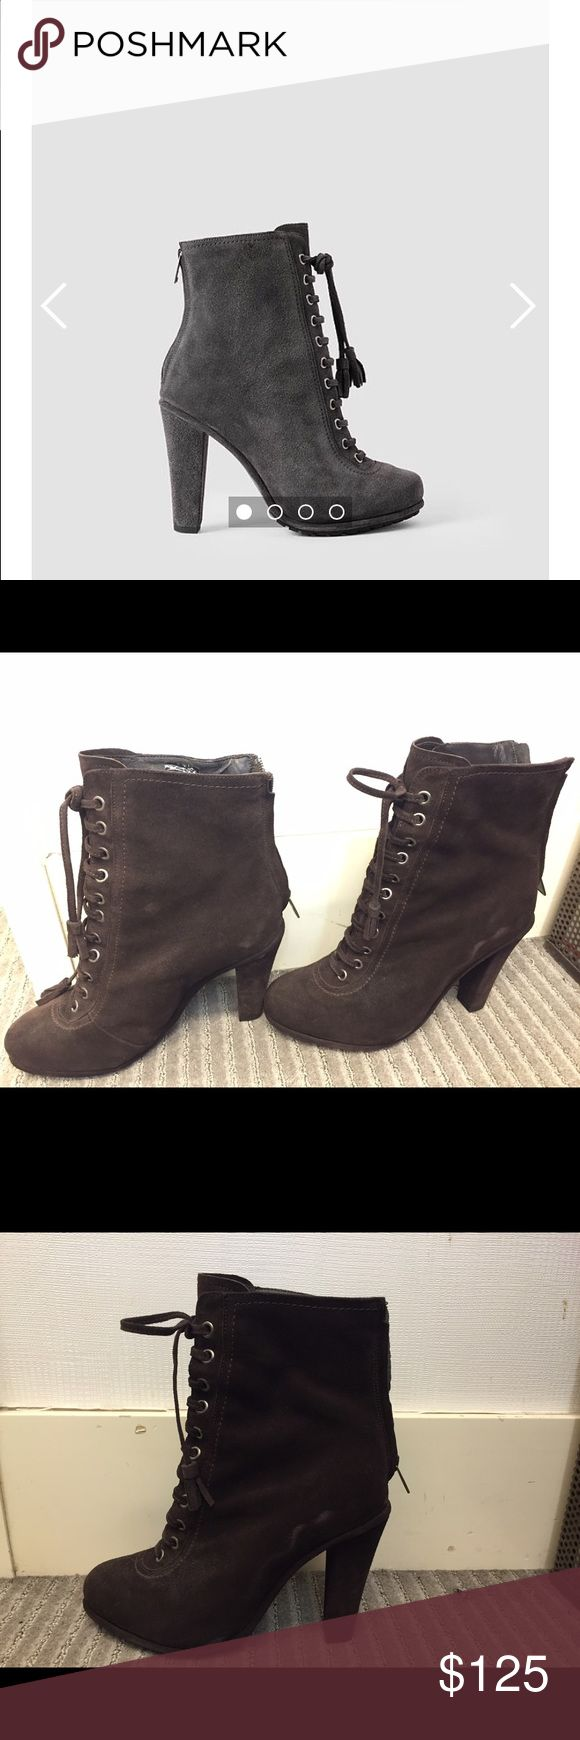 Allsaints boots Brown suede boots from Allsaints All Saints Shoes Ankle Boots & Booties